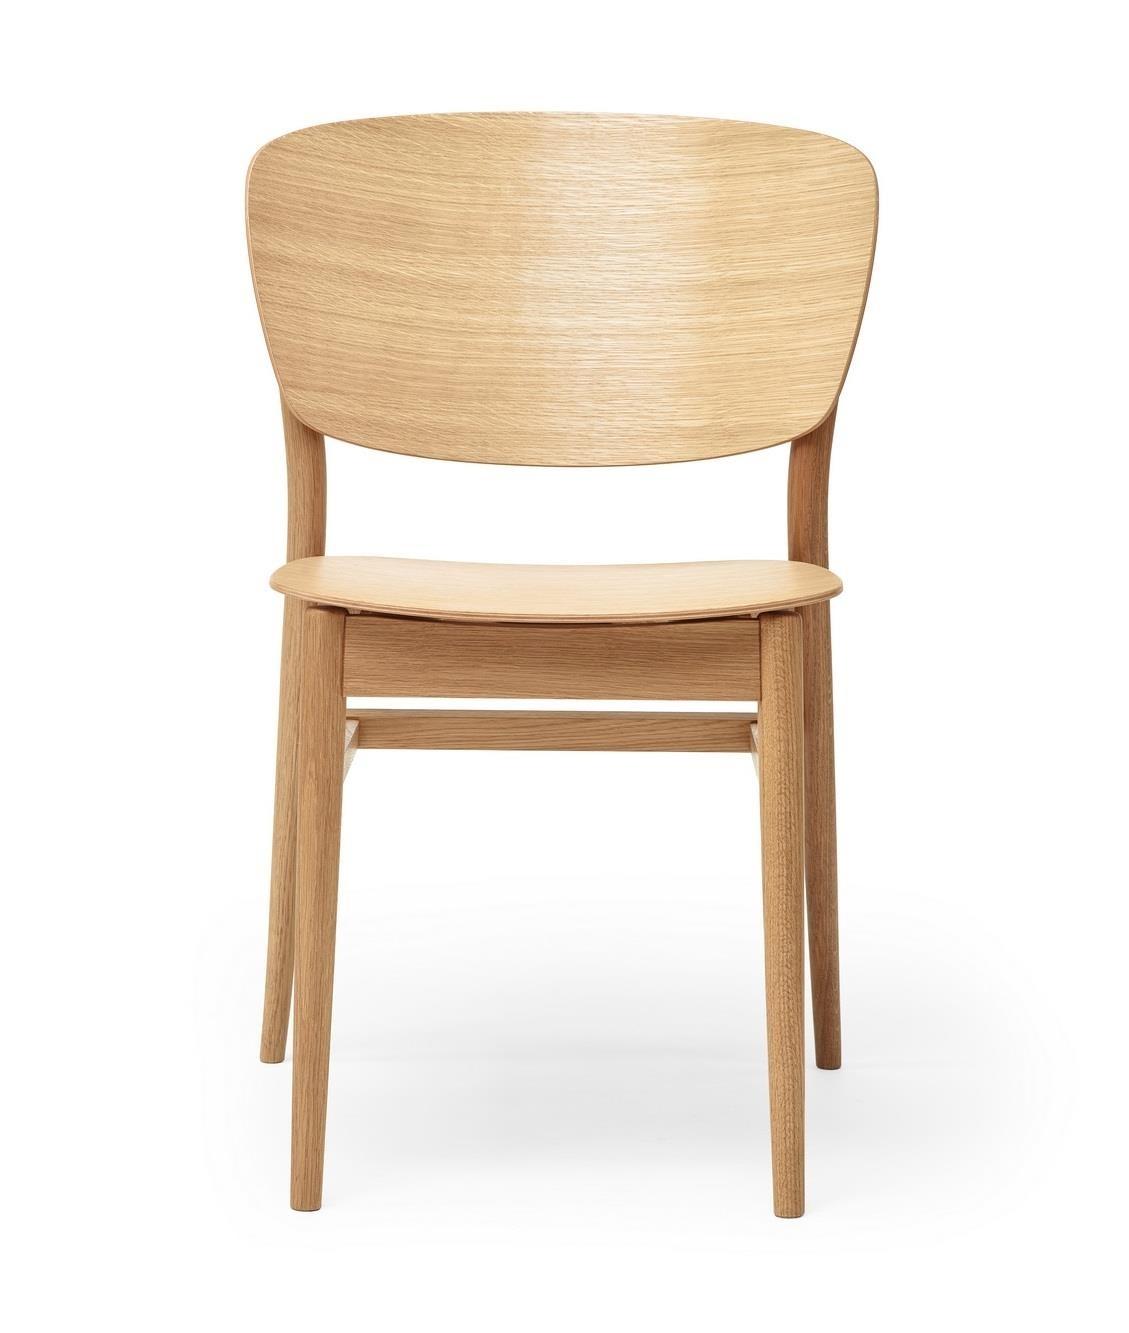 Valencia Side Chairs With Upholstered Seat Inside Latest Valencia Side Chair, Wooden – Telegraph Contract Furniture (#13 of 20)